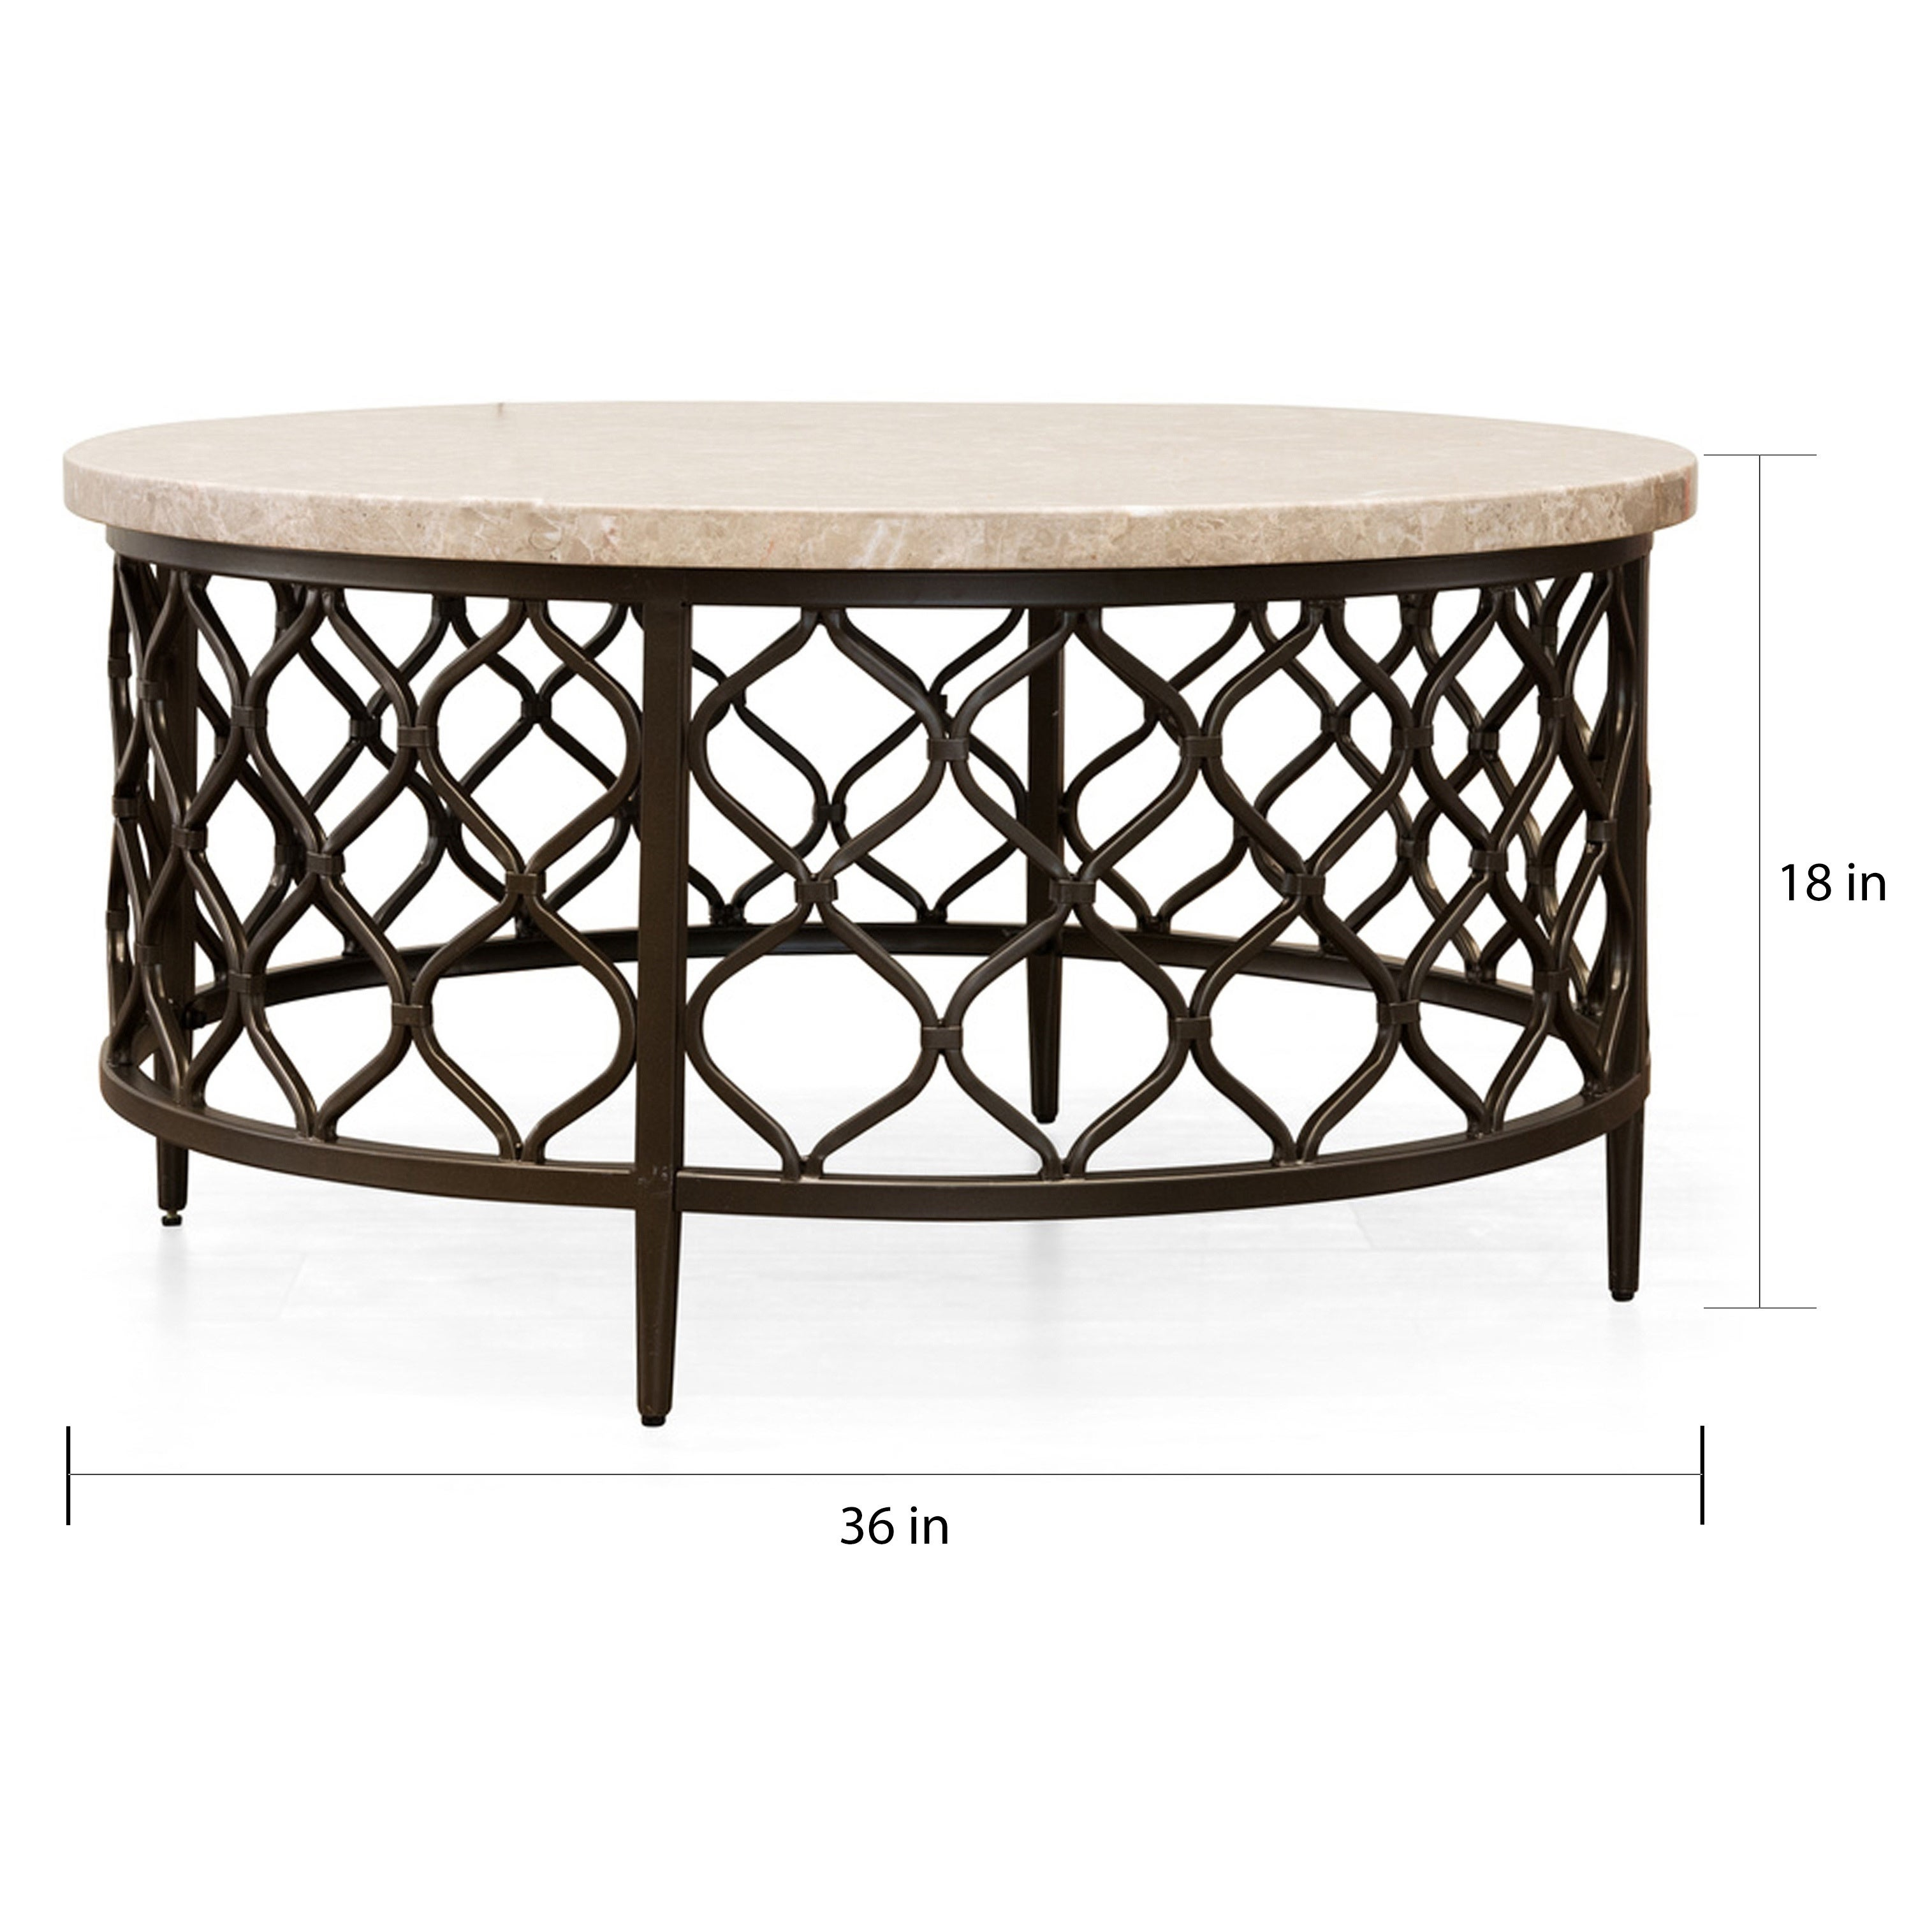 Round Coffee Table With Stone Top 10